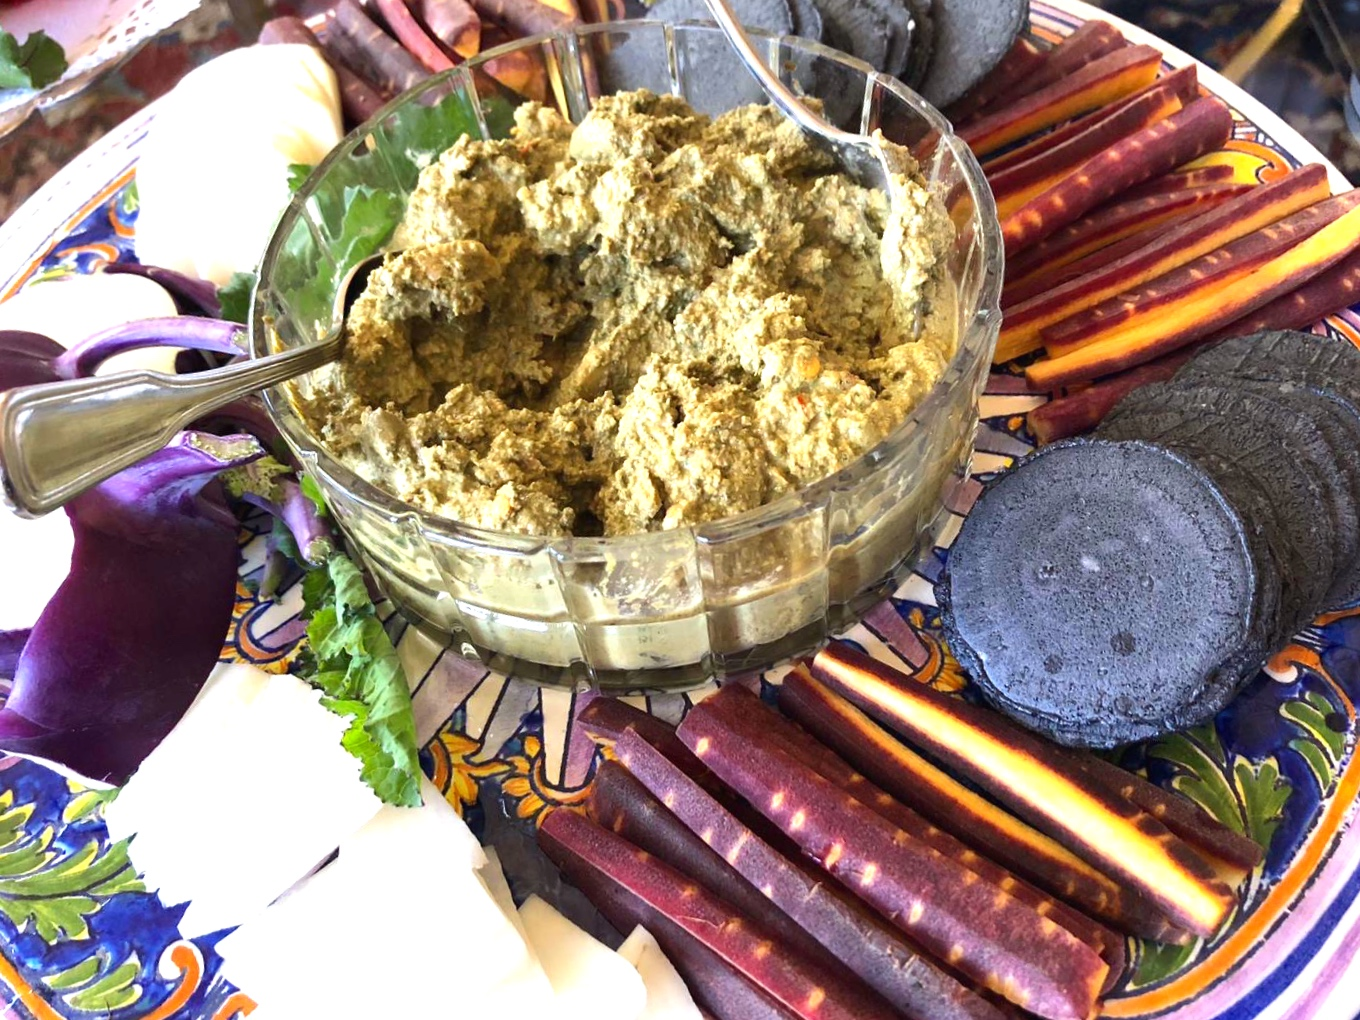 - Ingredients½ cup mint leaves rinsed and drained¾ cup walnuts1 clove garlic1 green chili (de -seed to keep mild)2 tbsp. waterDirectionsPlace everything in a blender and pulse until smooth.Serve as a dip or as a condiment with an Indian meal